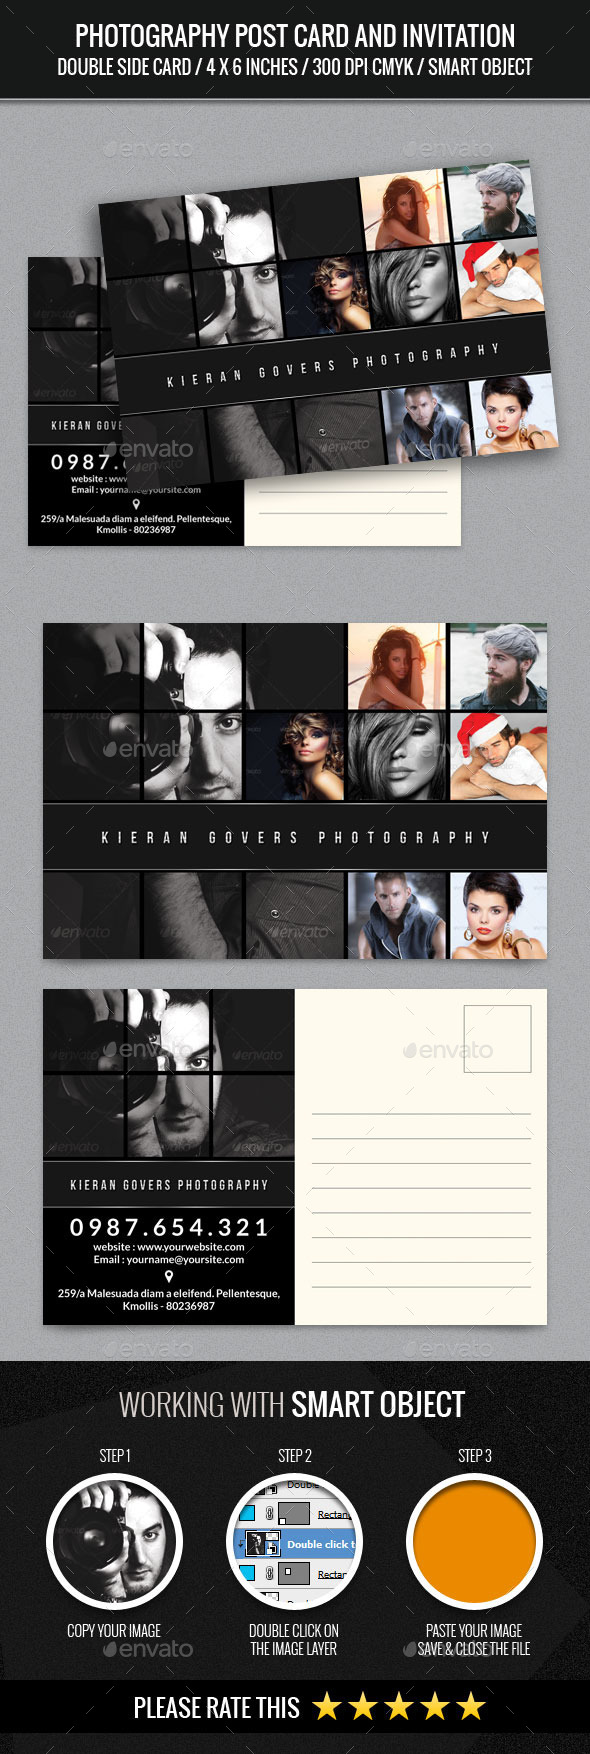 Photographer and Photography Post Card Template